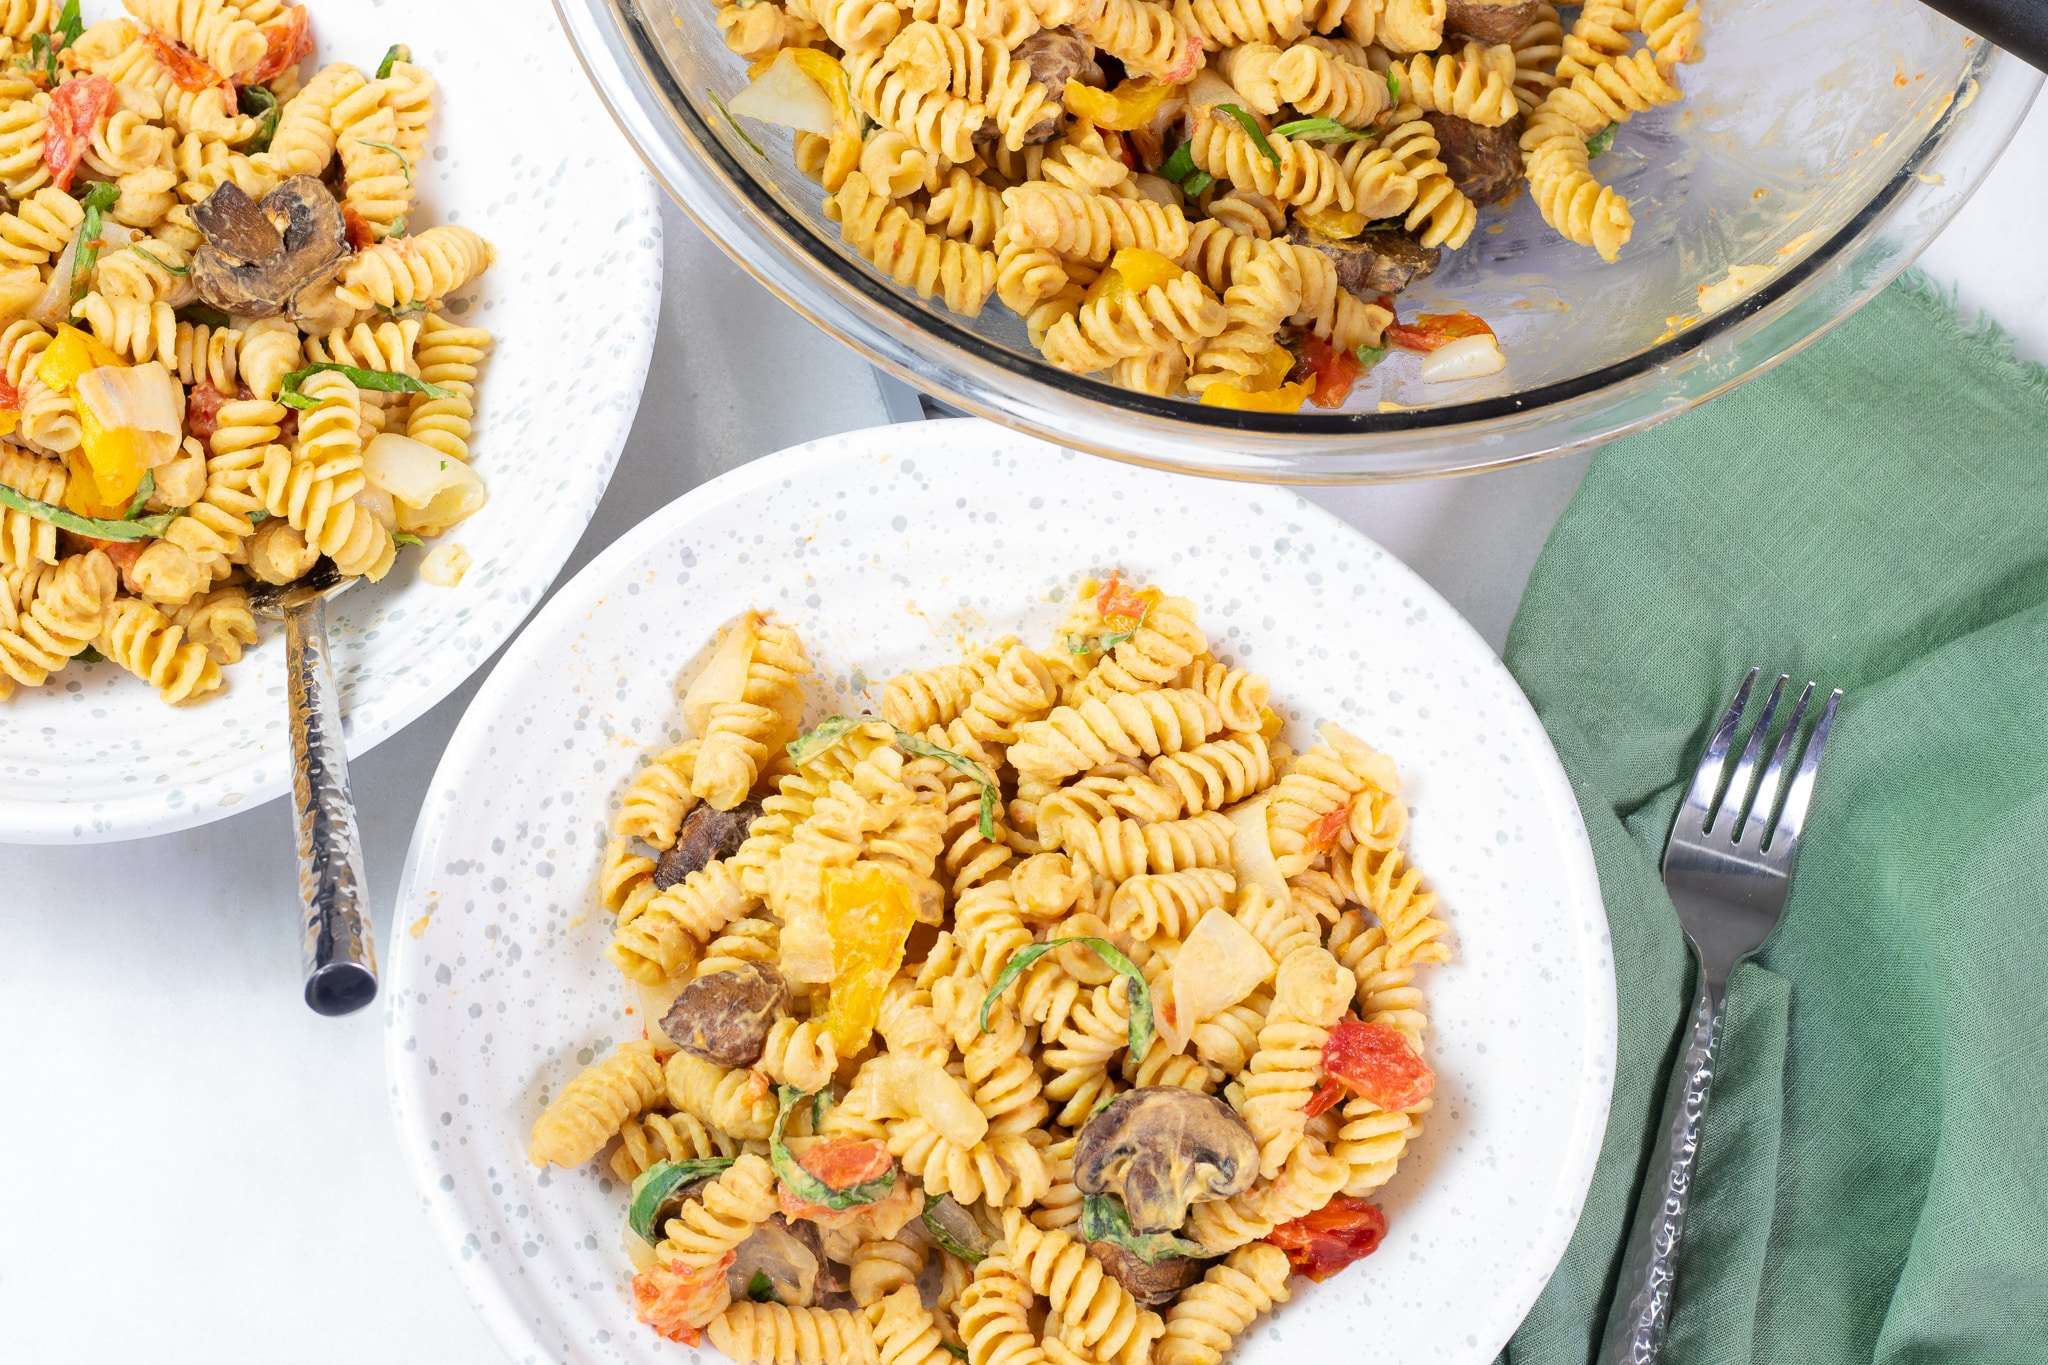 Pasta Salad with Hummus and Roasted Vegetables